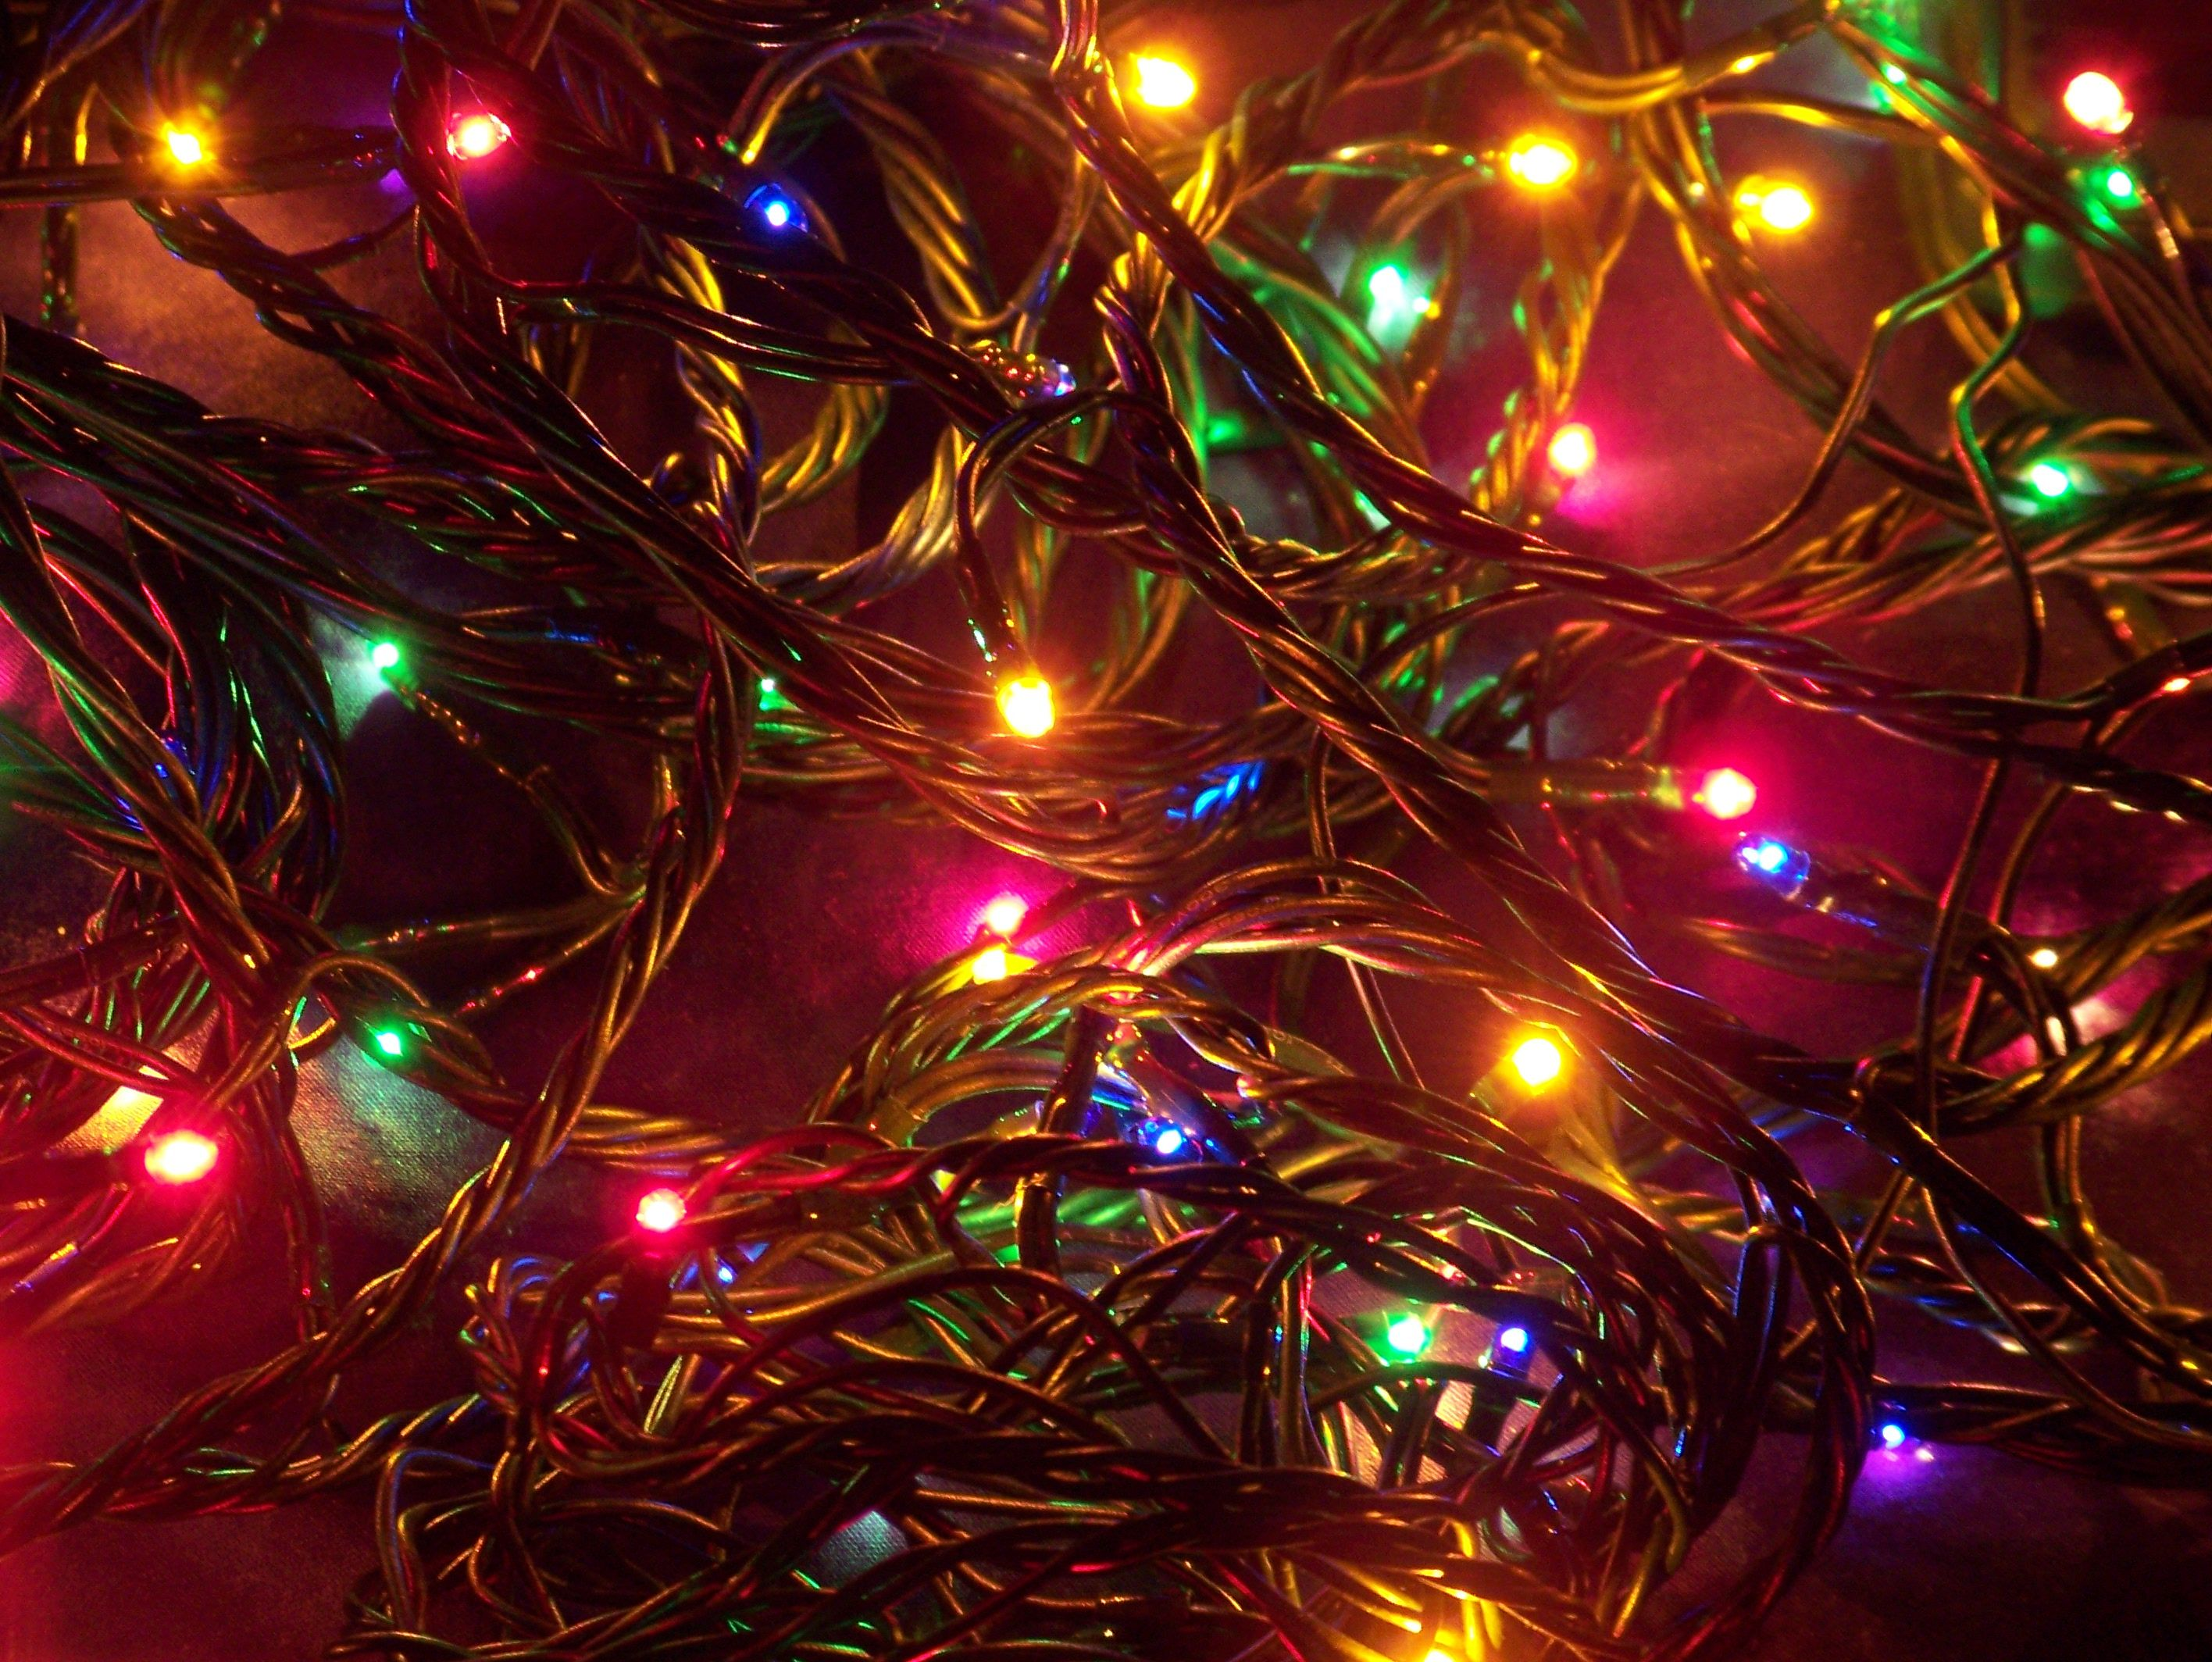 Christmas Lights Desktop Wallpapers Top Free Christmas